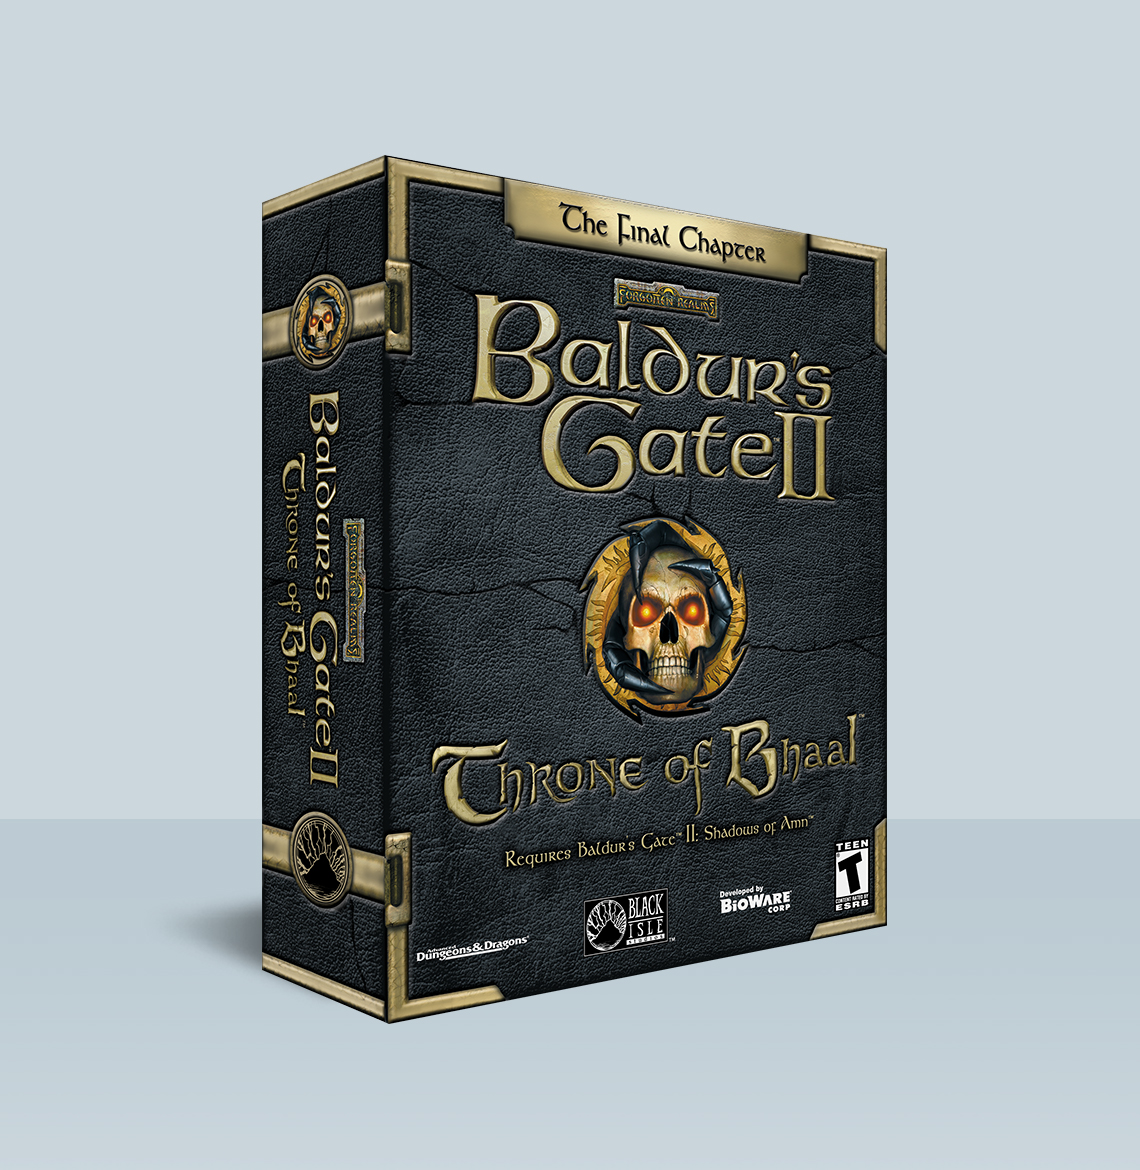 Baldur's Gate II: Throne of Bhaal Package